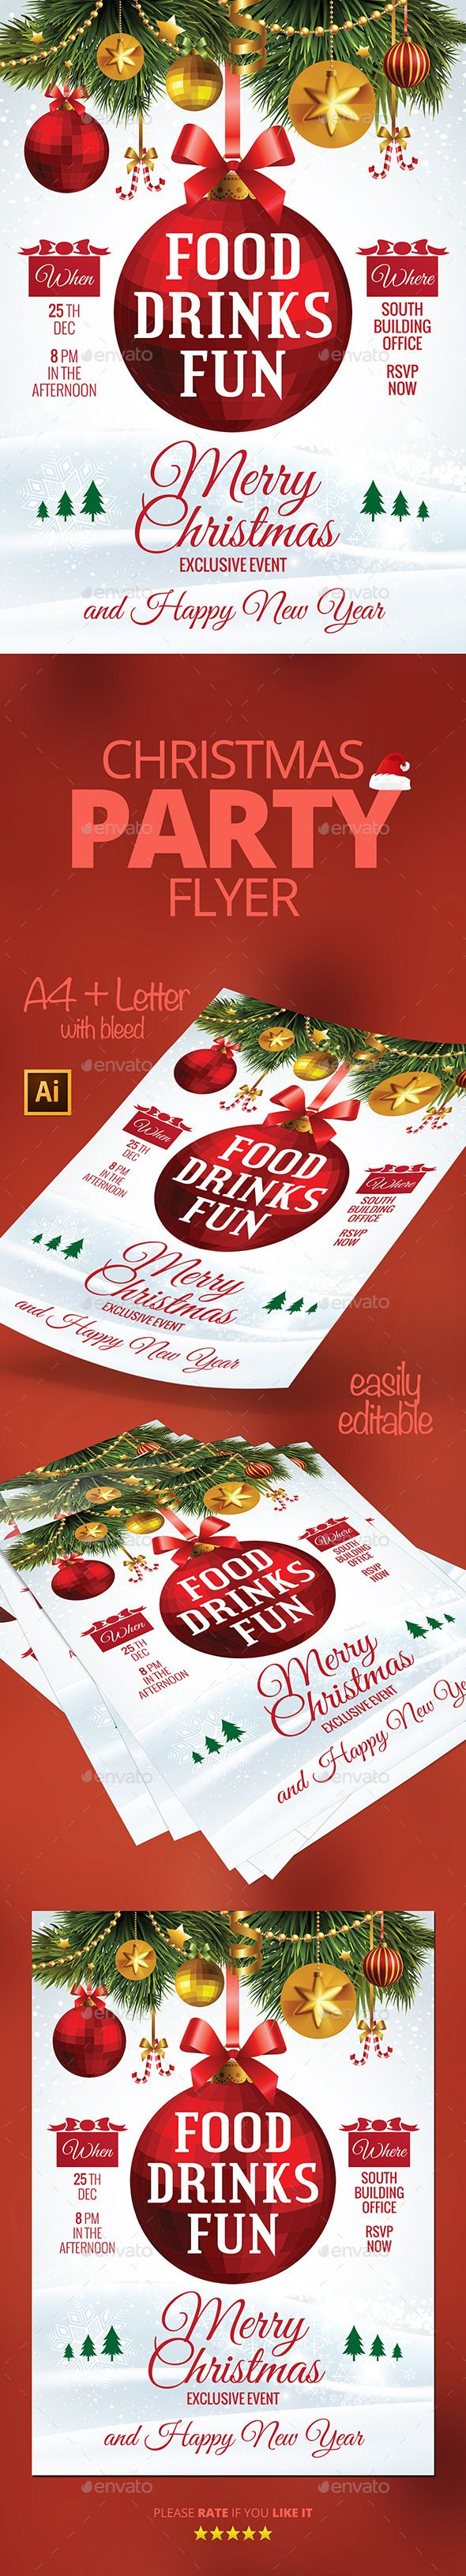 Christmas Party Invitation Flyer Template PSD #design #xmas Download: http://graphicriver.net/item/christmas-party-invitation/13383214?ref=ksioks